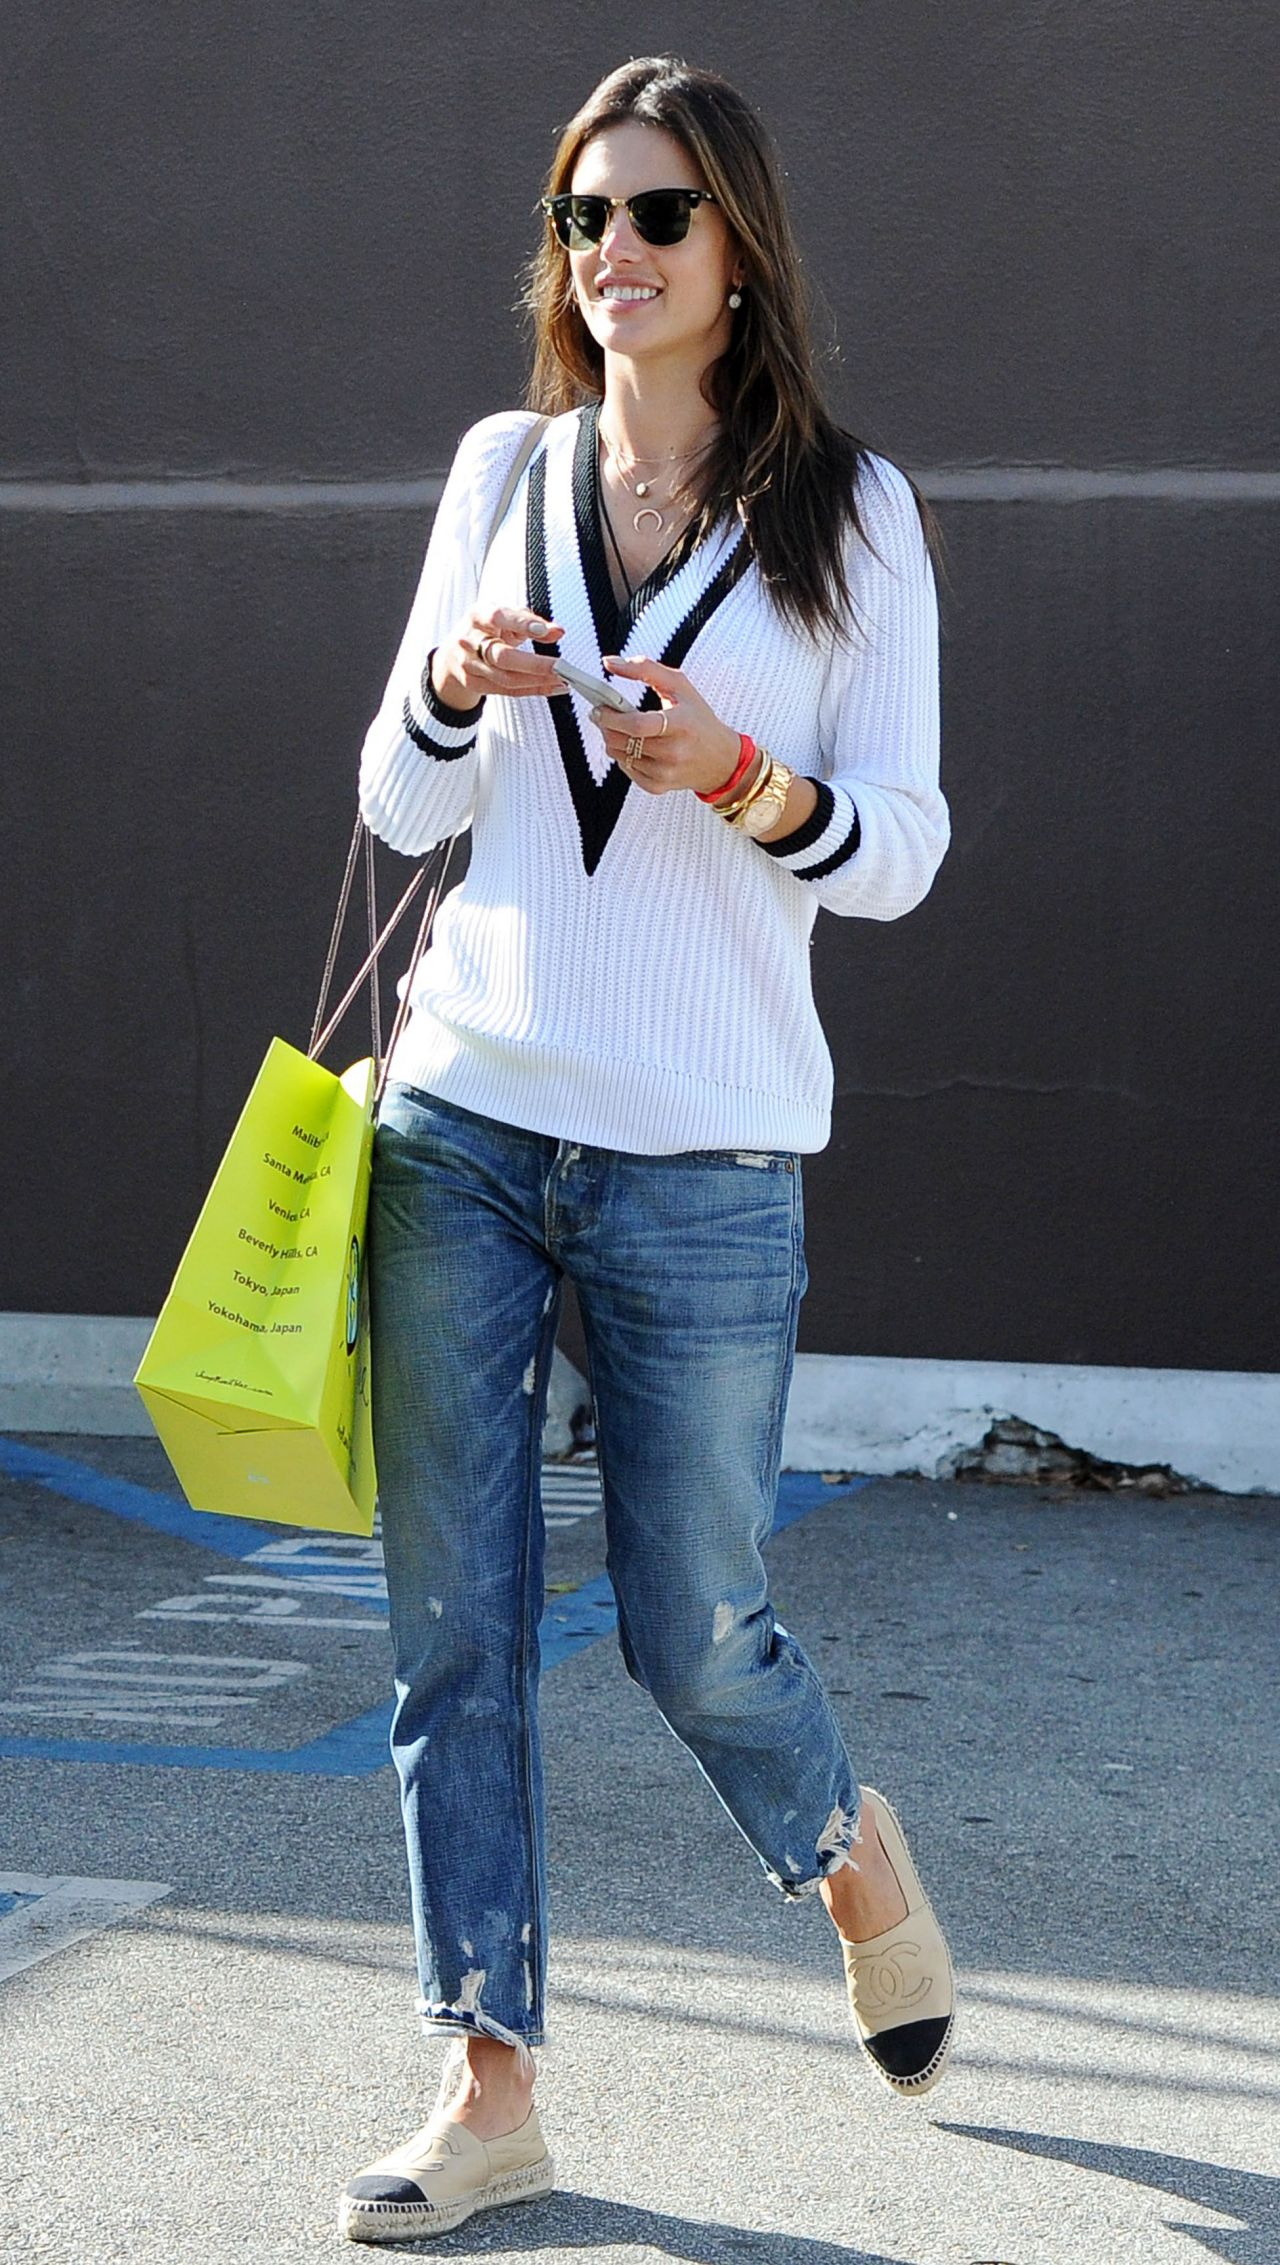 alessandra ambrosio casual style  'blue planet' store in